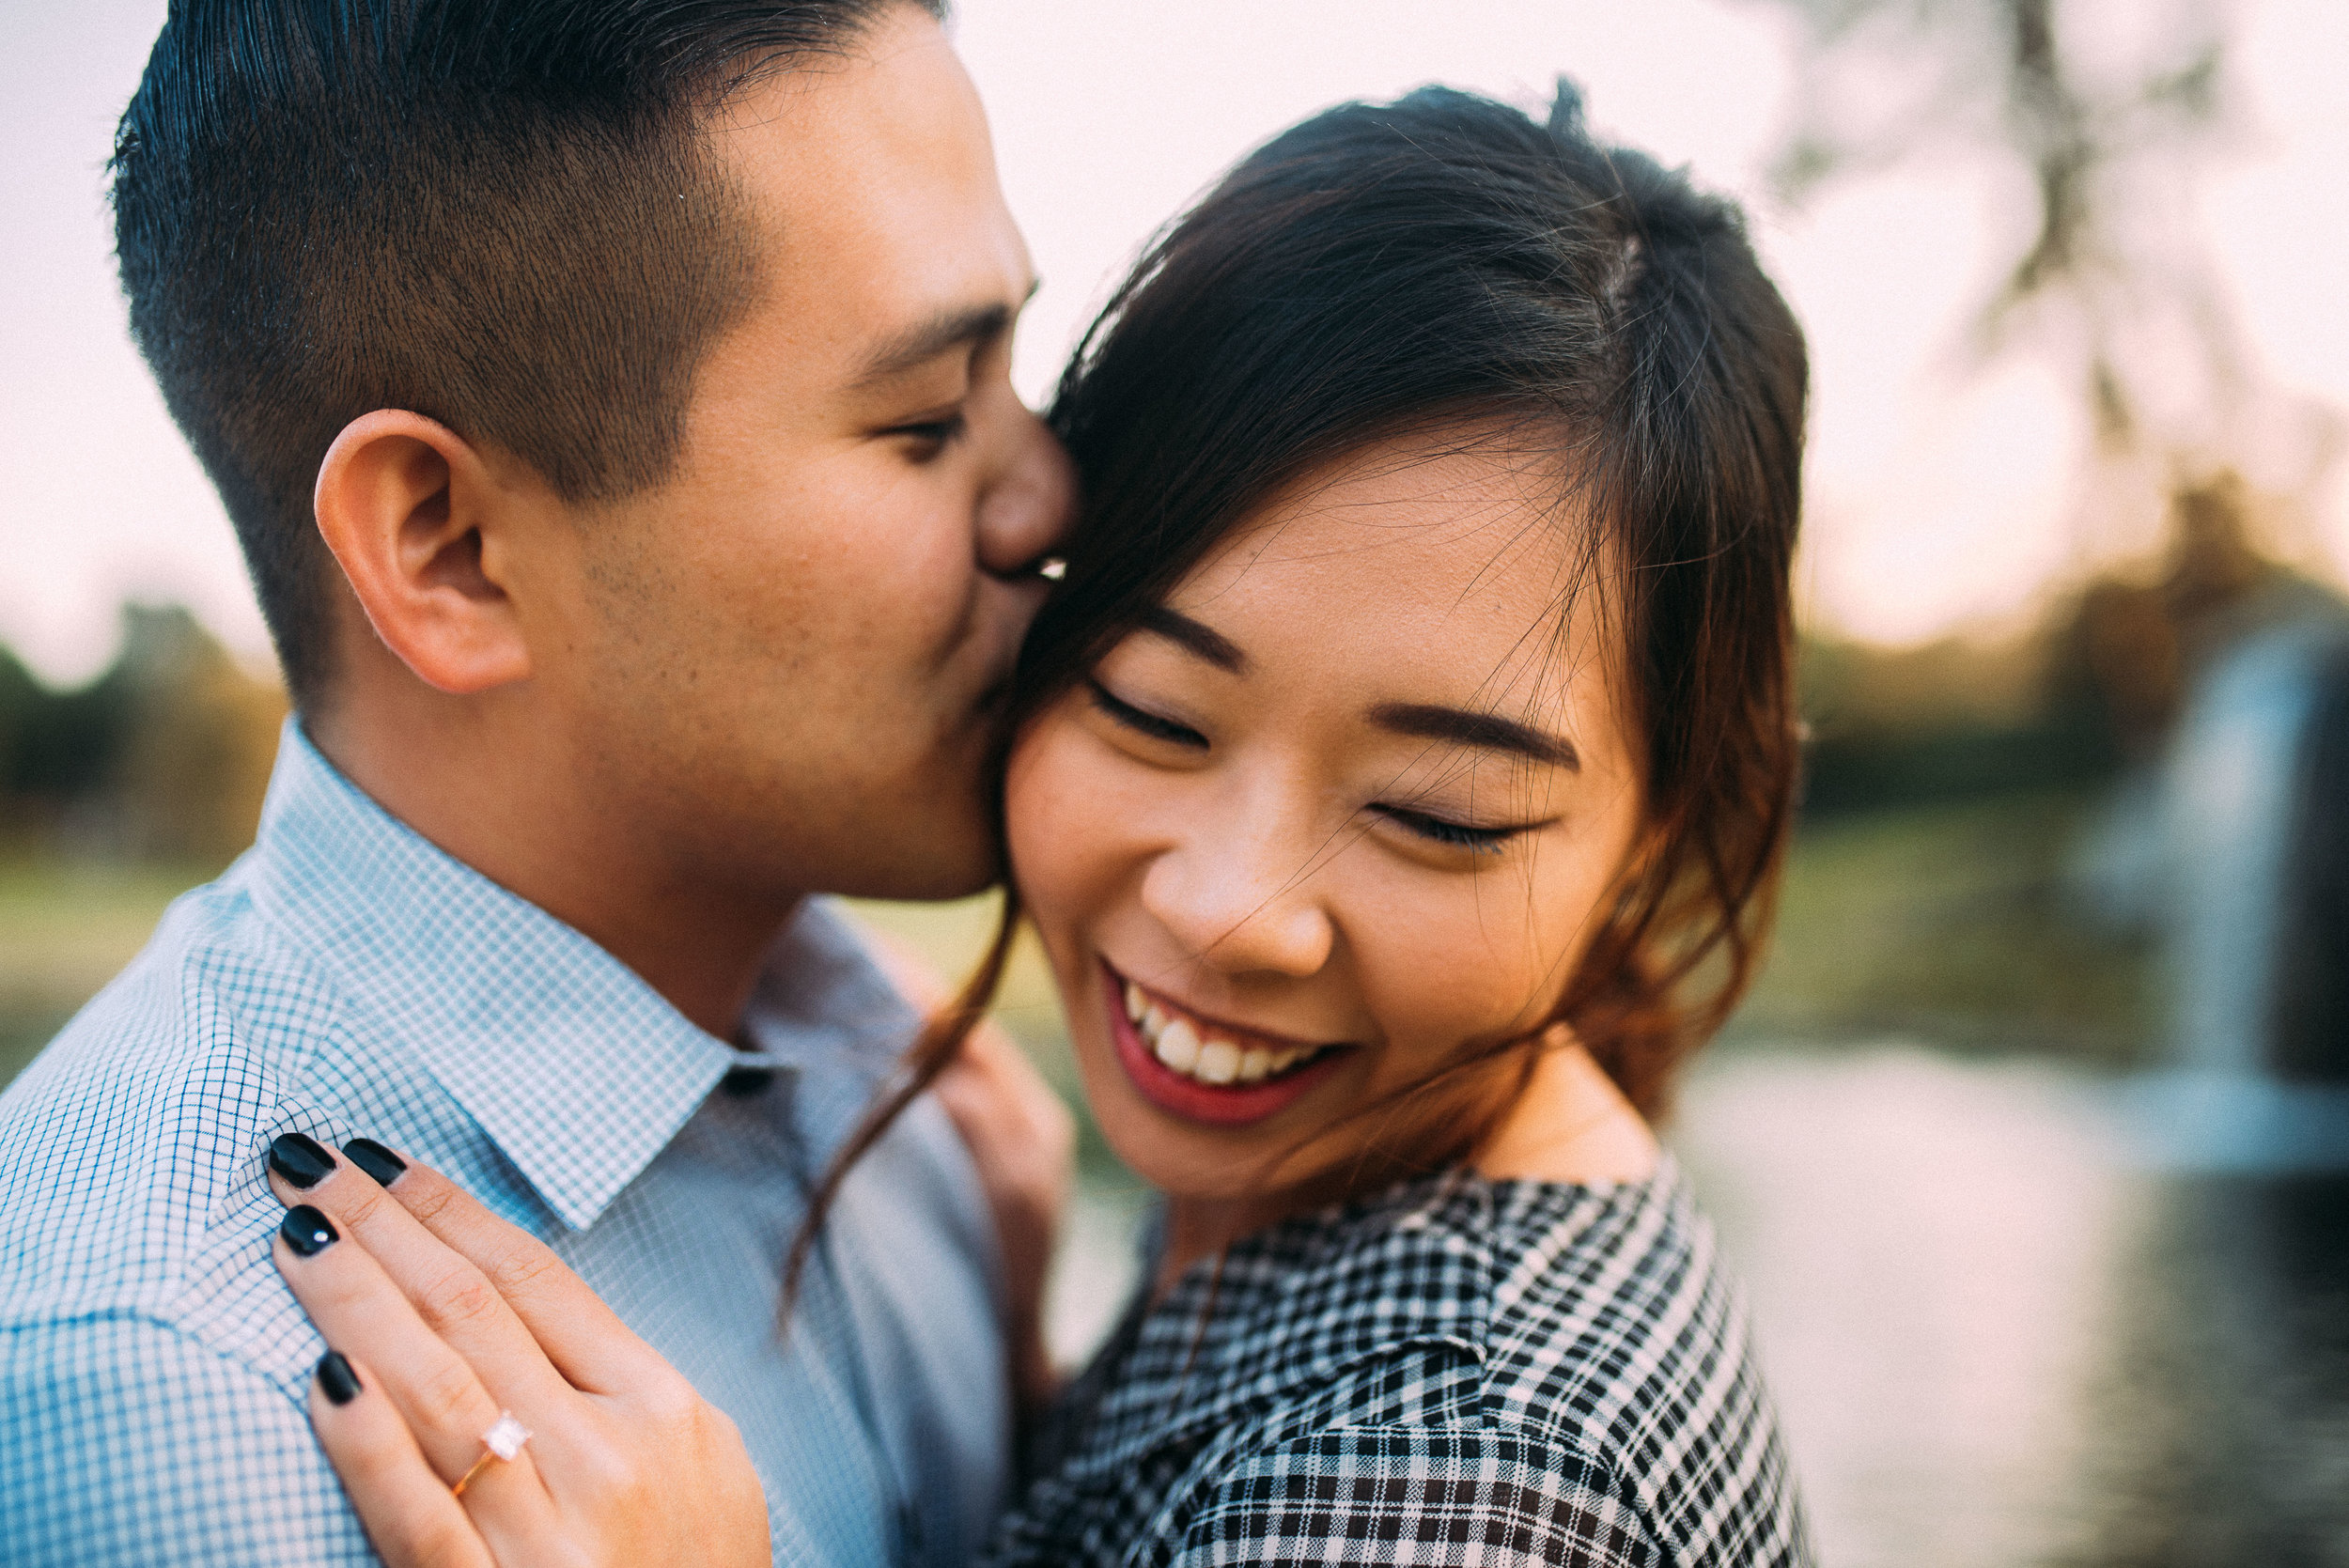 casey-proposal-chino-hill-english-spring-park-engagement-1-39.jpg